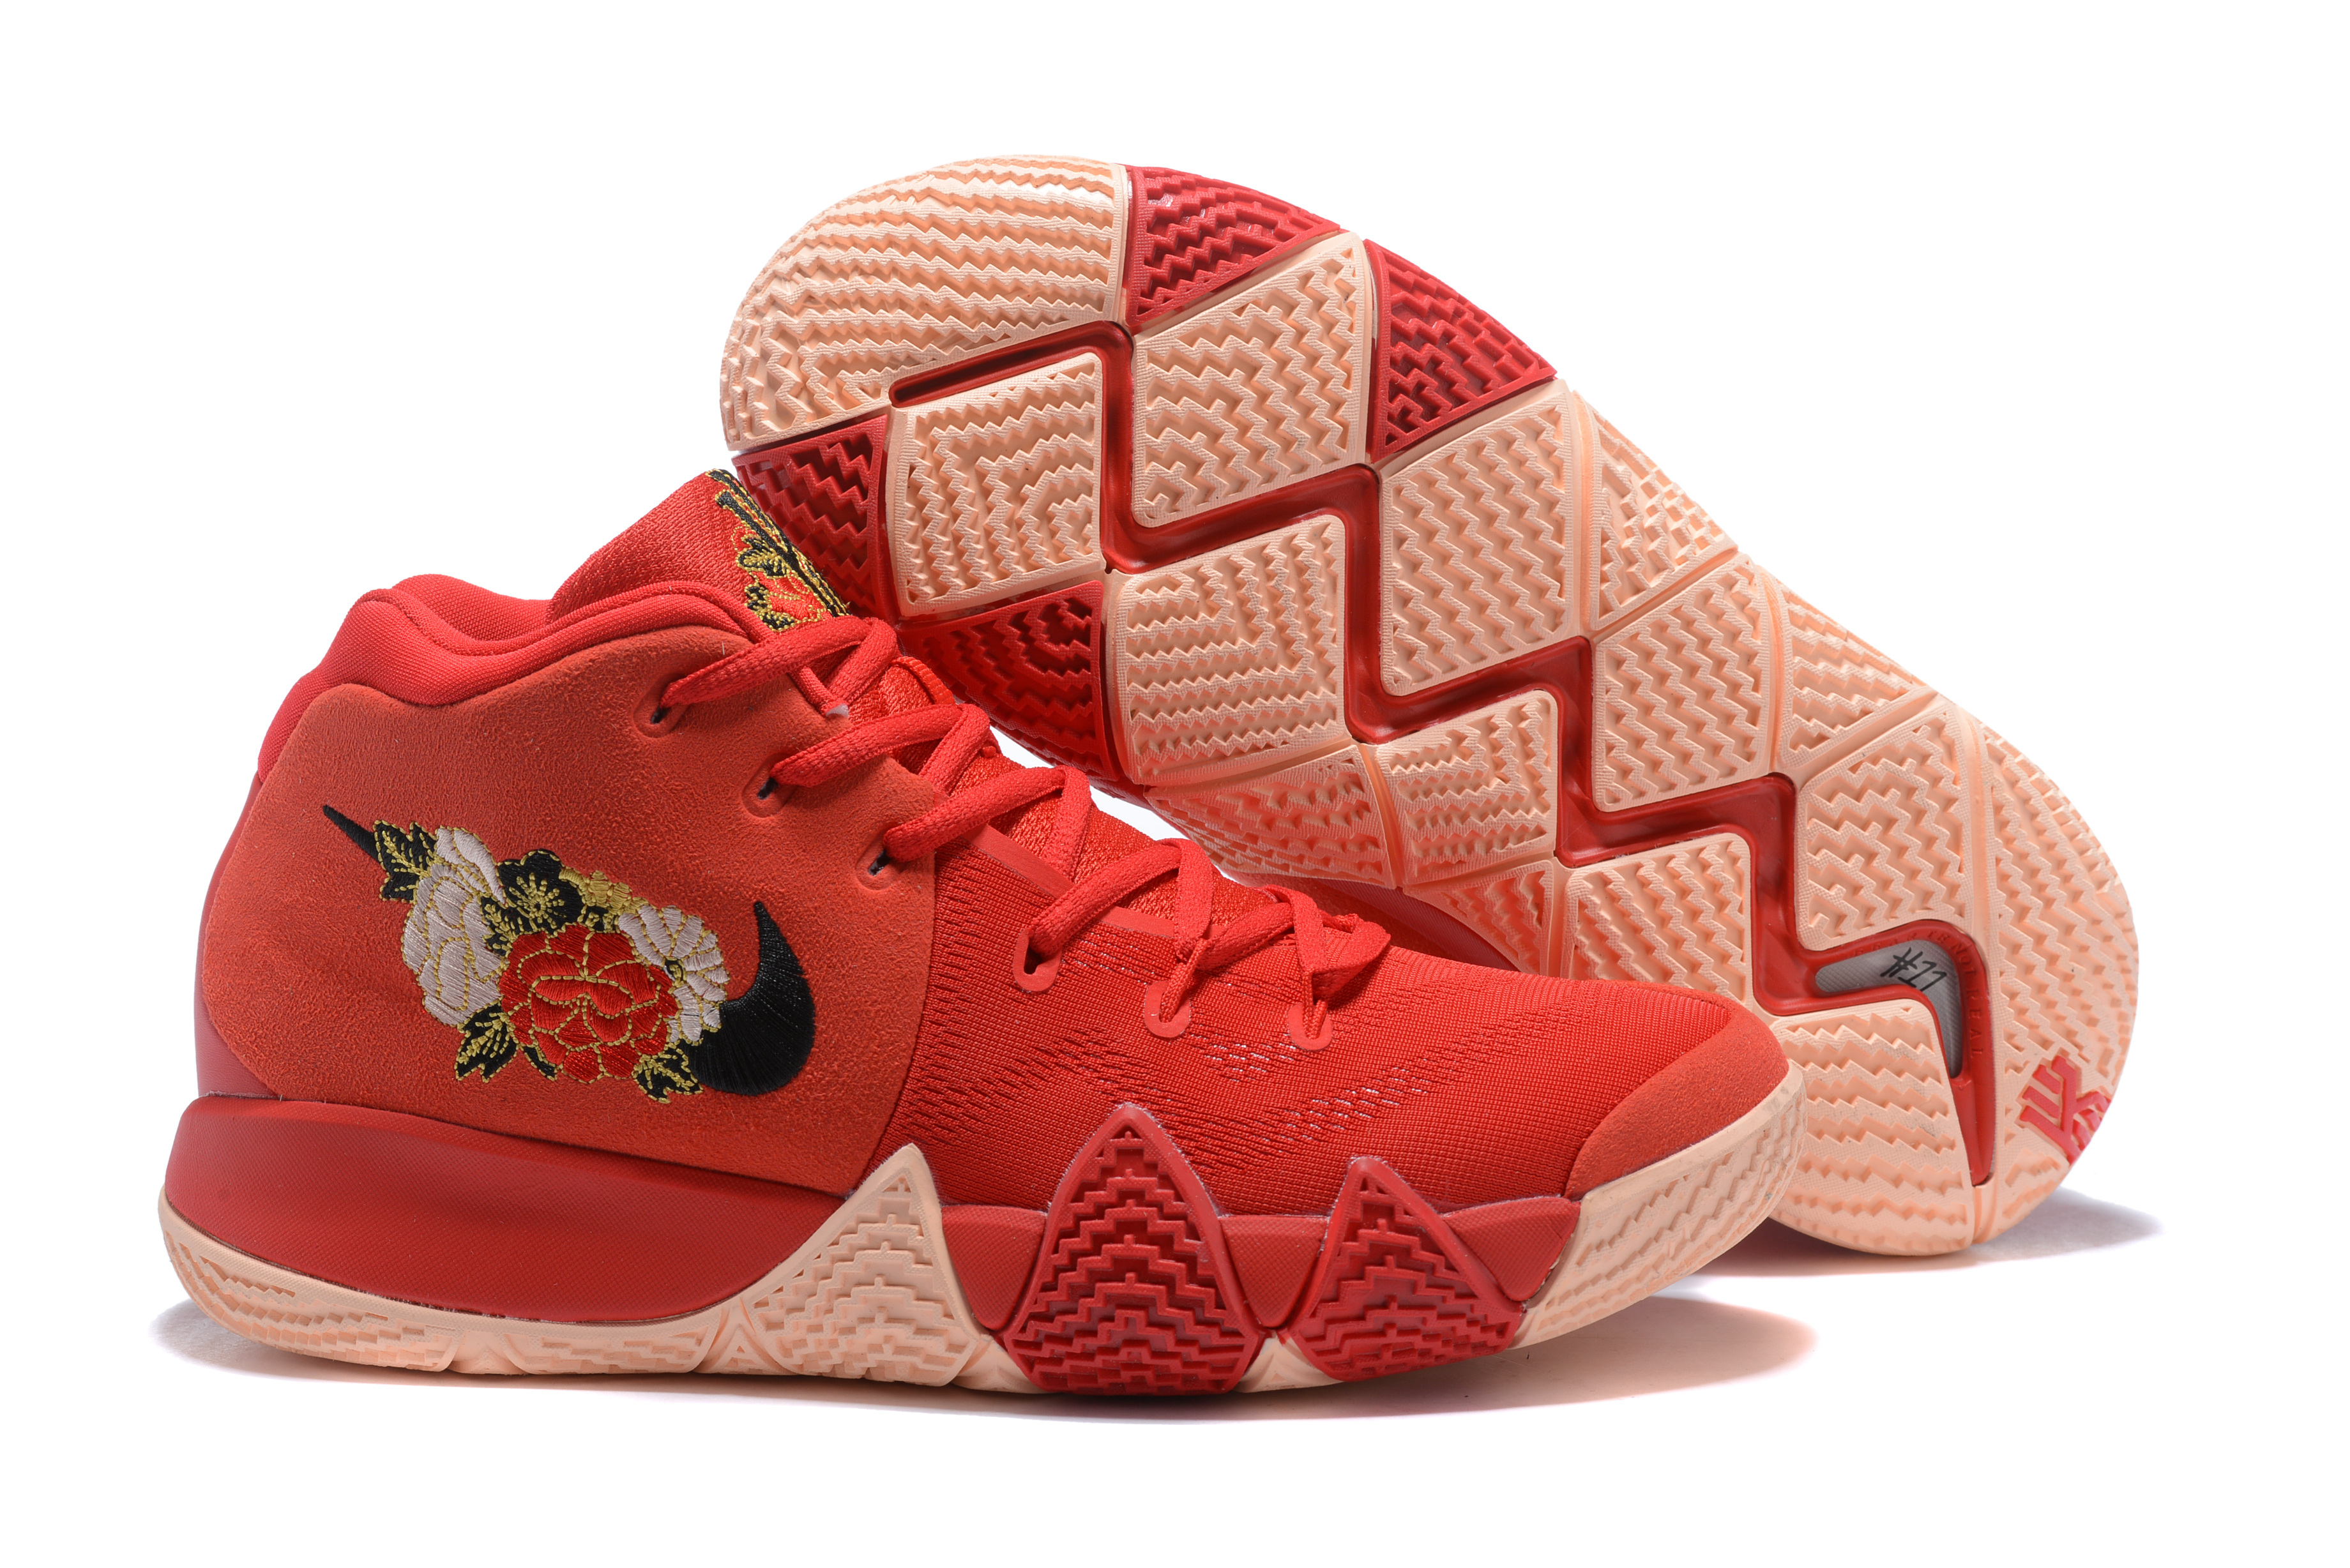 2018 Nike Kyrie 4 Red Followers Print Shoes